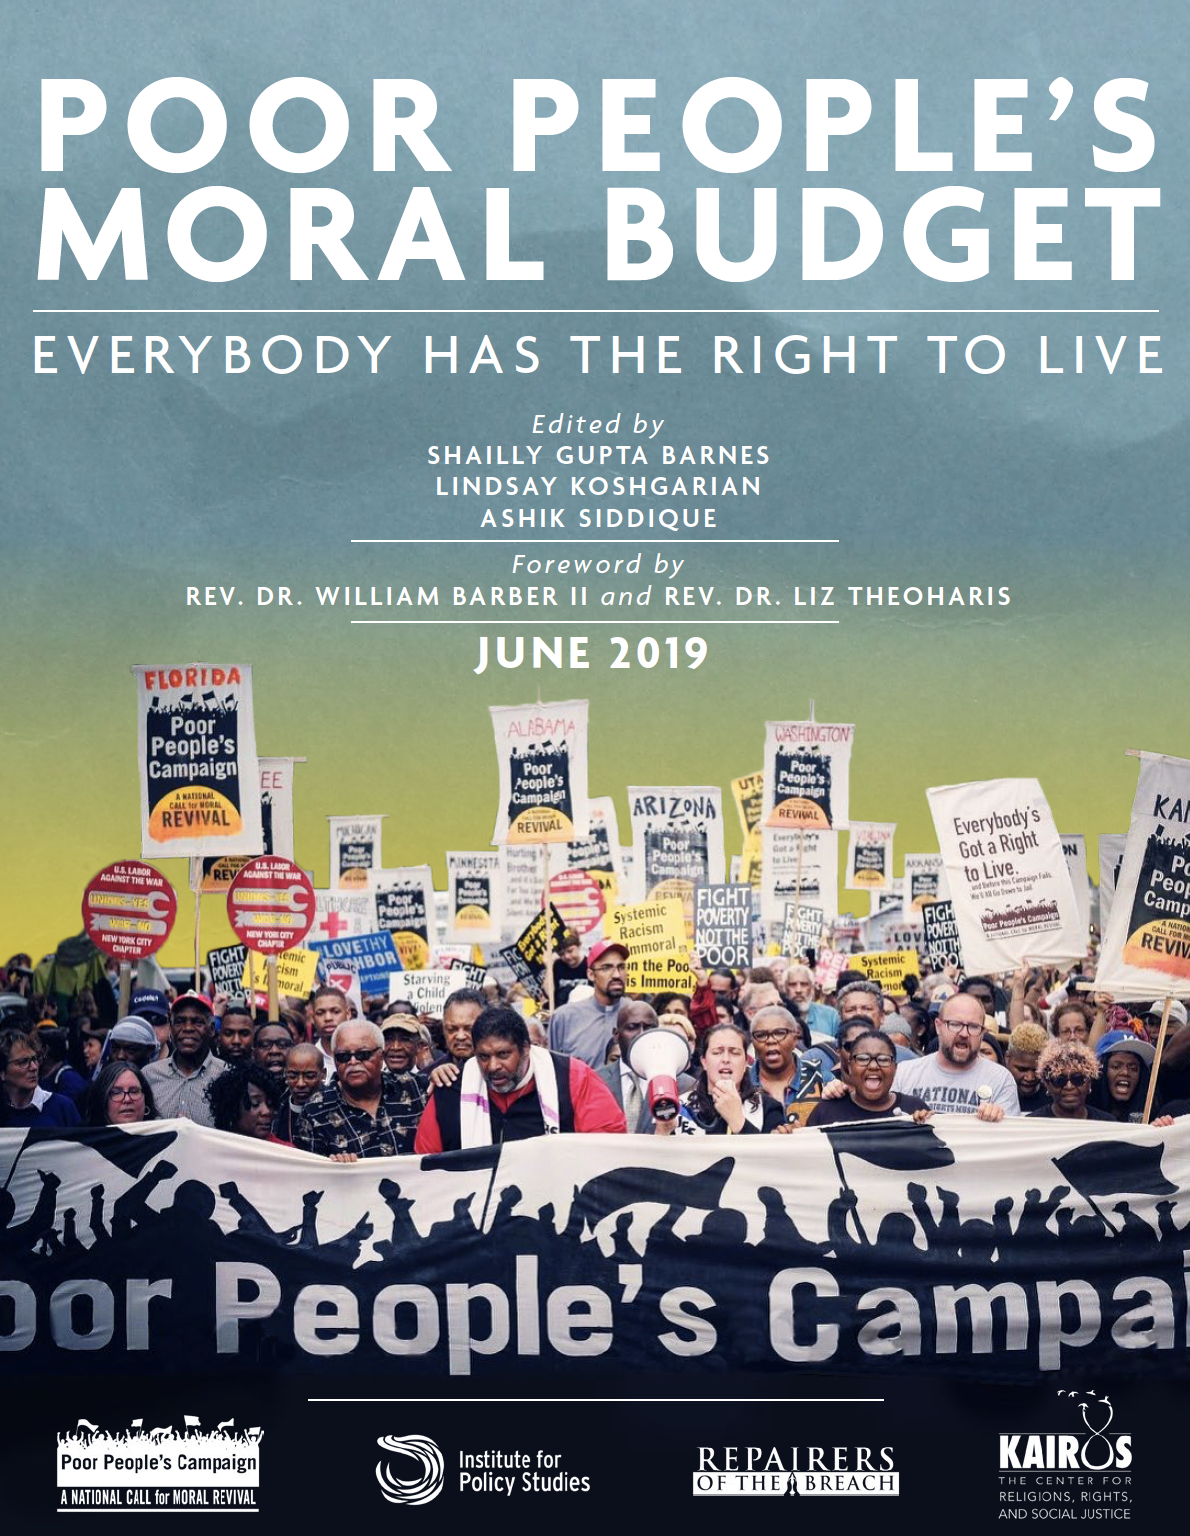 Moral Budget - In April 2018, the Poor People's Campaign: A National Call for Moral Revival released a Moral Agenda and Declaration of Fundamental Rights. The demands contained within that document present a comprehensive response to the systemic racism, poverty, ecological devastation, militarism, and war economy plaguing our country today. For the 140 million people who are poor, or one emergency away from being poor, we know these demands are necessary. This Poor People's Moral Budget asks, given the resources of our society, whether these demands are also possible. Our answer is a resounding yes.